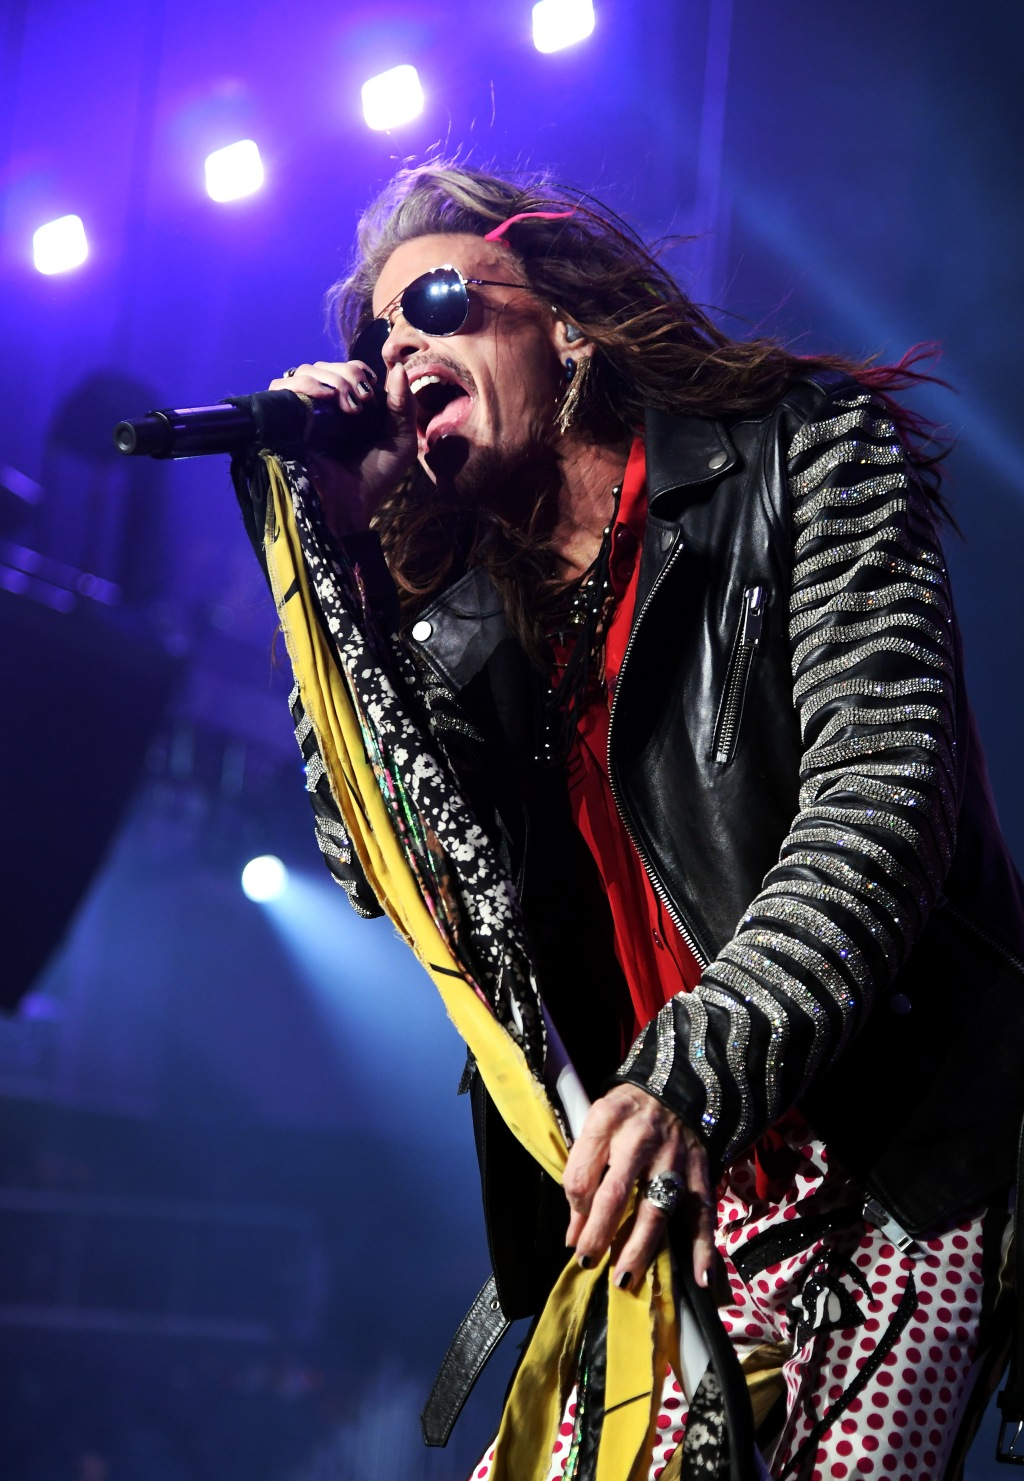 Steven Tyler of Aerosmith performs onstage during Day 2 of Bud Light Super Bowl Music Fest at State Farm Arena on February 1, 2019 in Atlanta, Georgia.